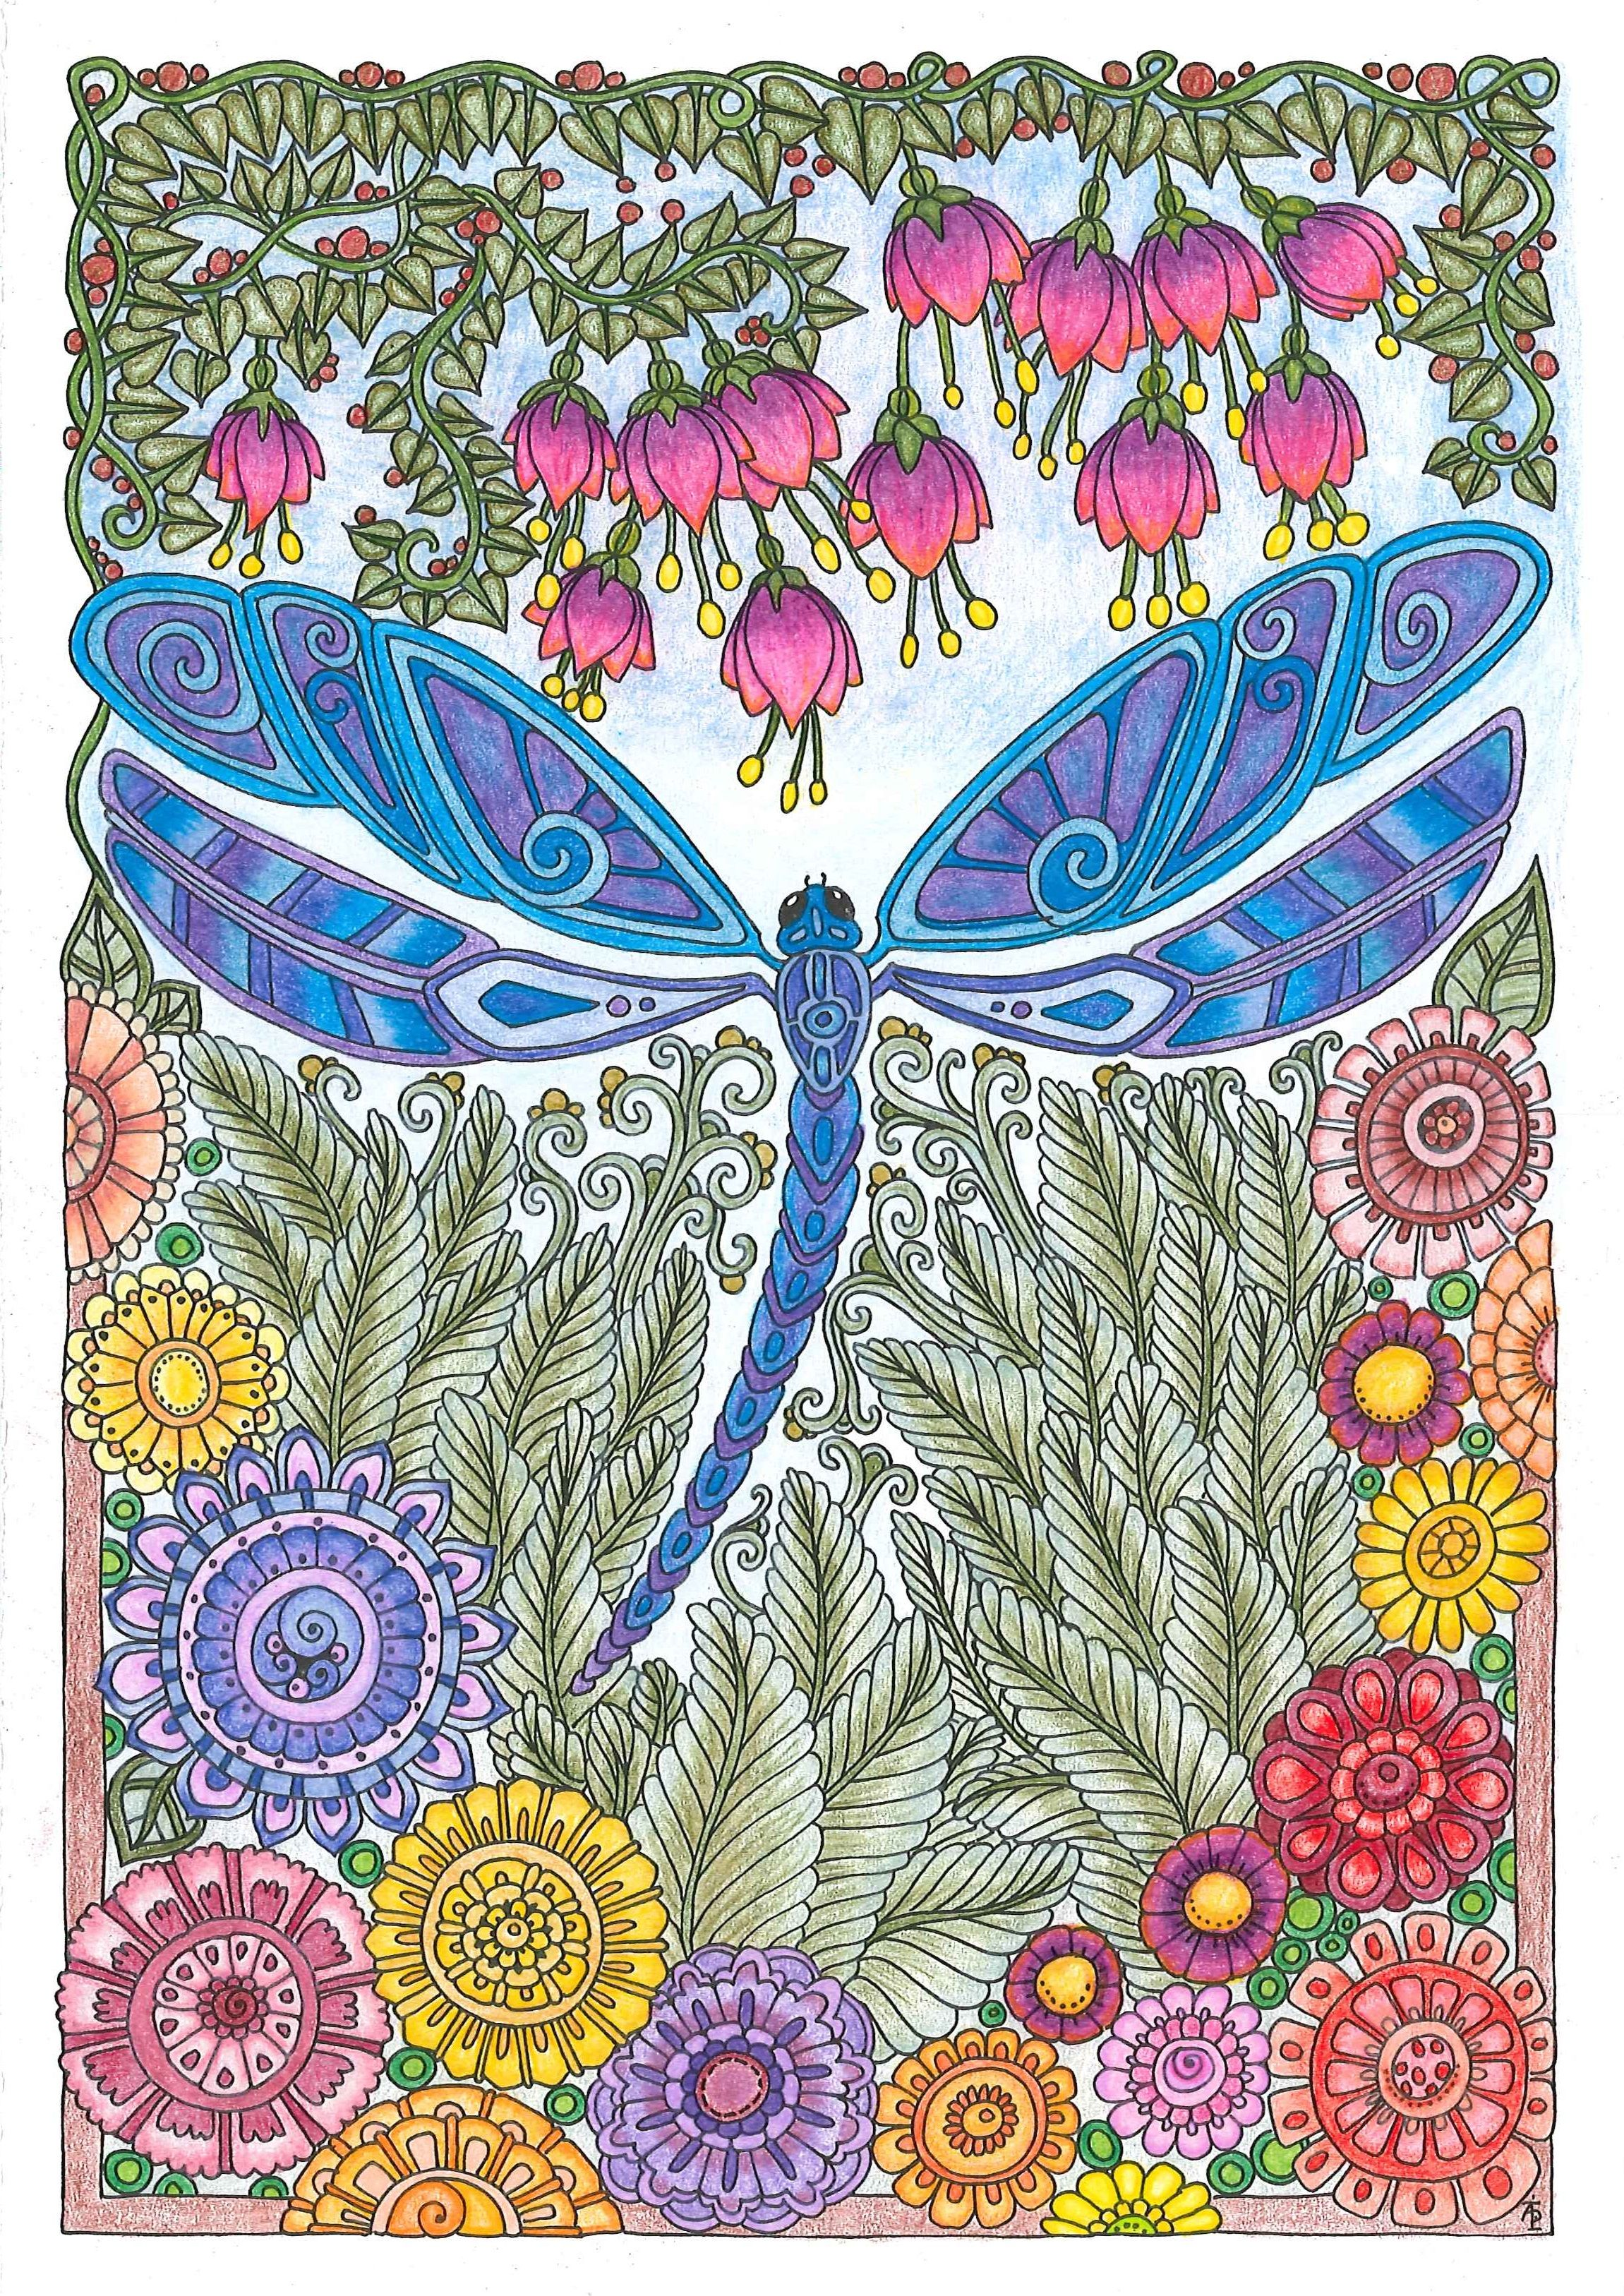 Coloring in dragonflies - Colored With Prismacolor Premier Color Pencils From Creative Haven Entangled Dragonflies